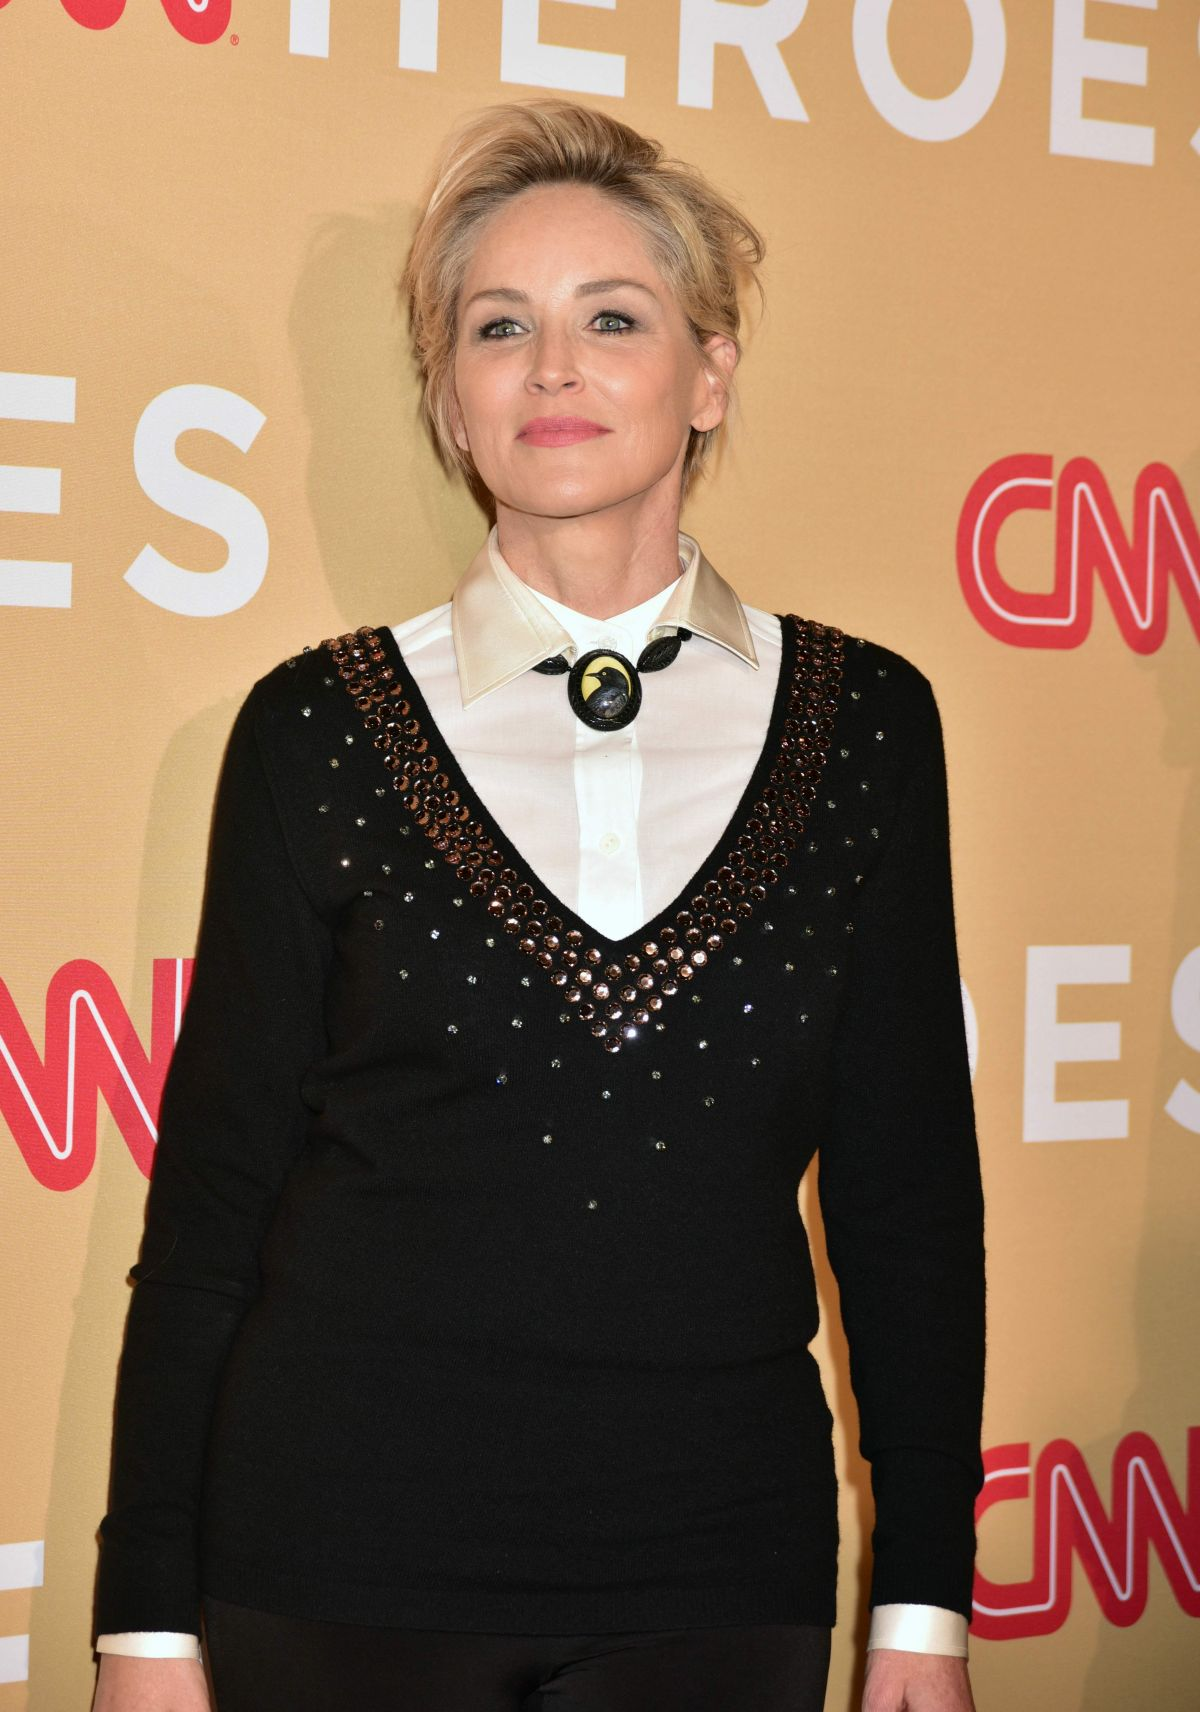 SHARON STONE at CNN Heroes 2015 in New York 11/17/2015